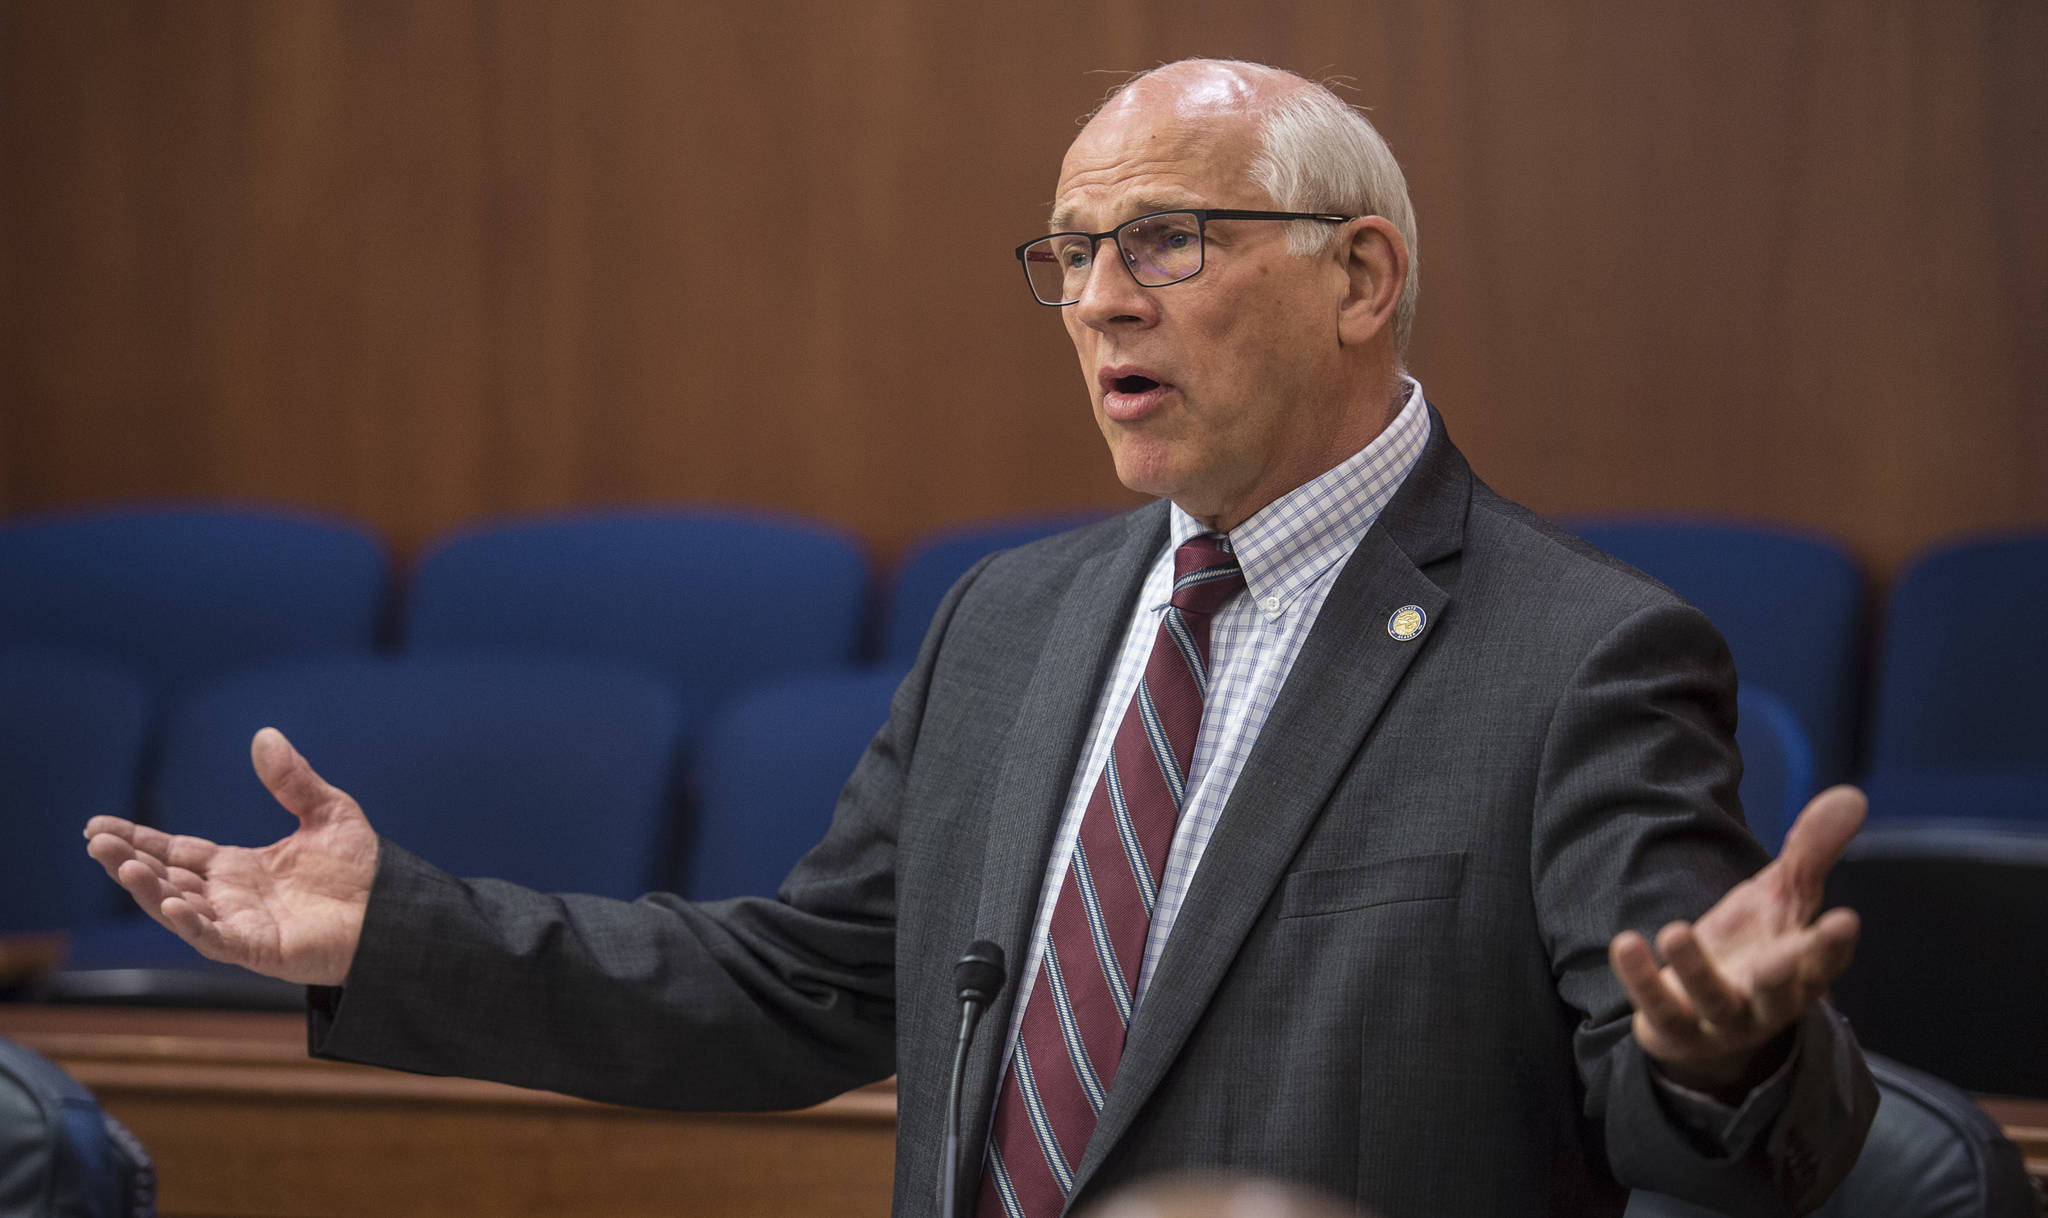 Sen. John Coghill, R-North Pole, debates to limit the funding of the Alaska Permanent Fund dividend through SB 1002 at the Capitol on Tuesday, June 4, 2019. The bill failed to pass. (Michael Penn | Juneau Empire)